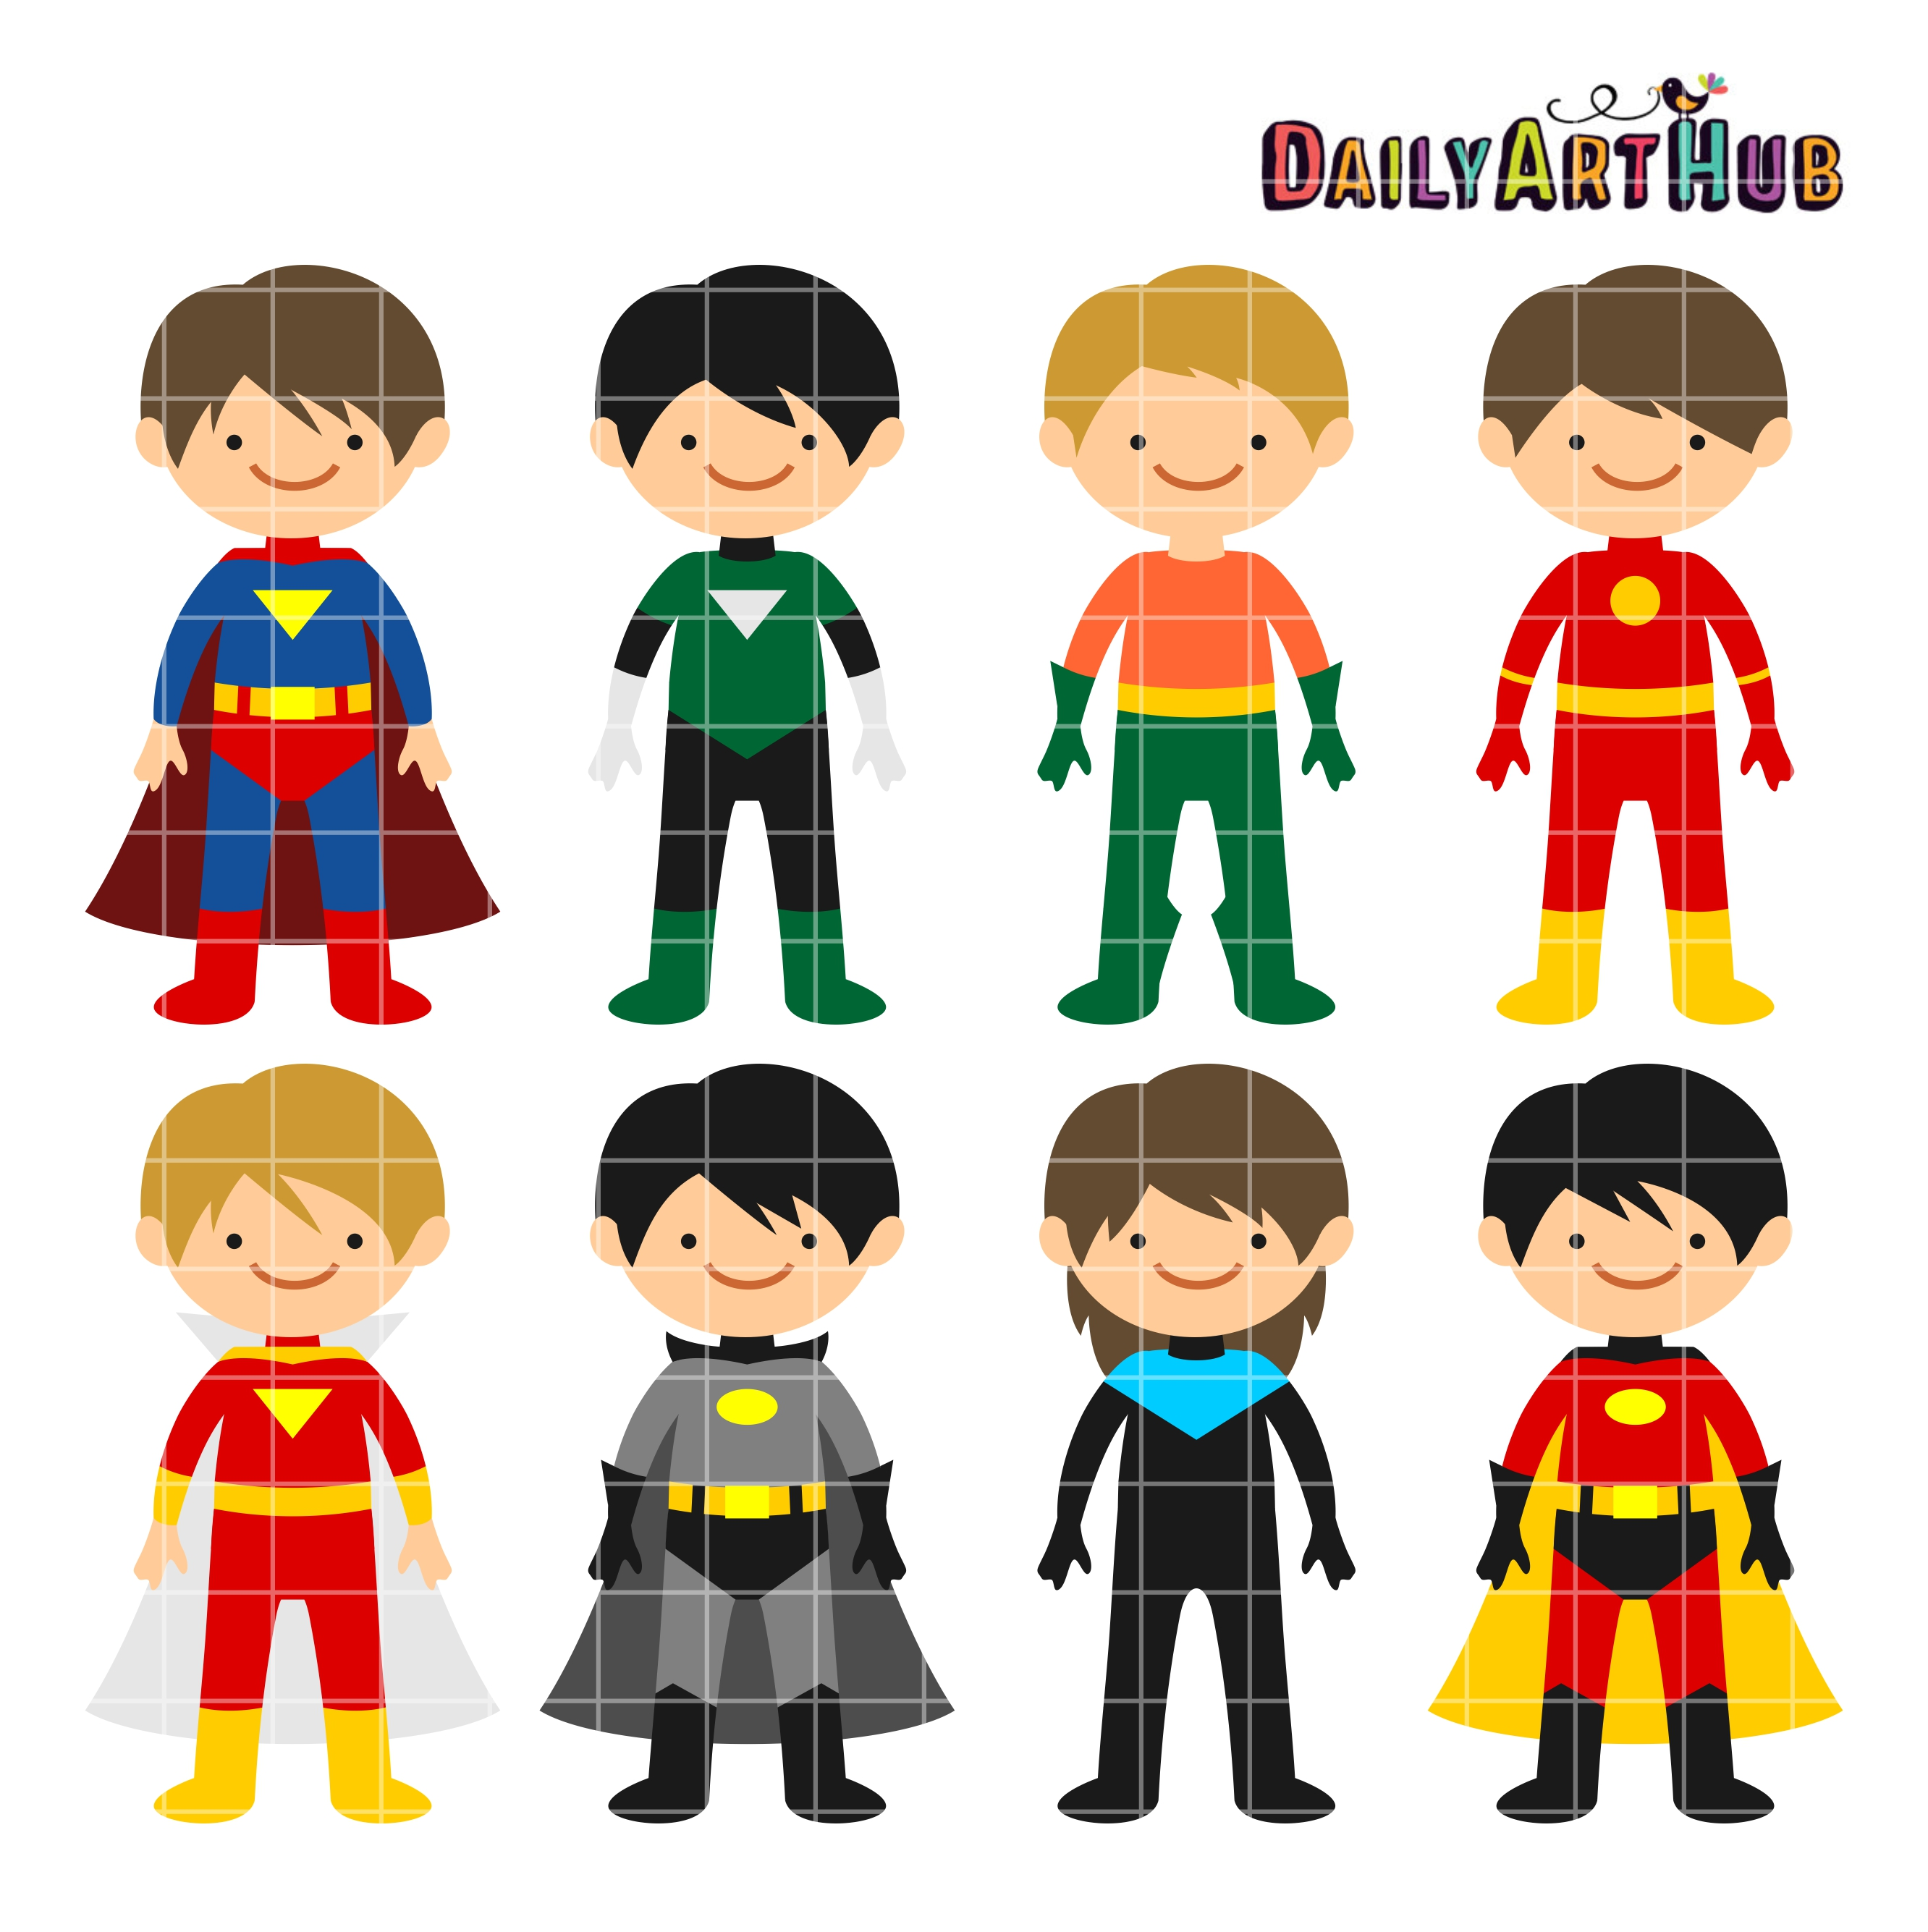 2664x2670 Superhero Boys Clip Art Set Daily Art Hub Free Clip Art Everyday